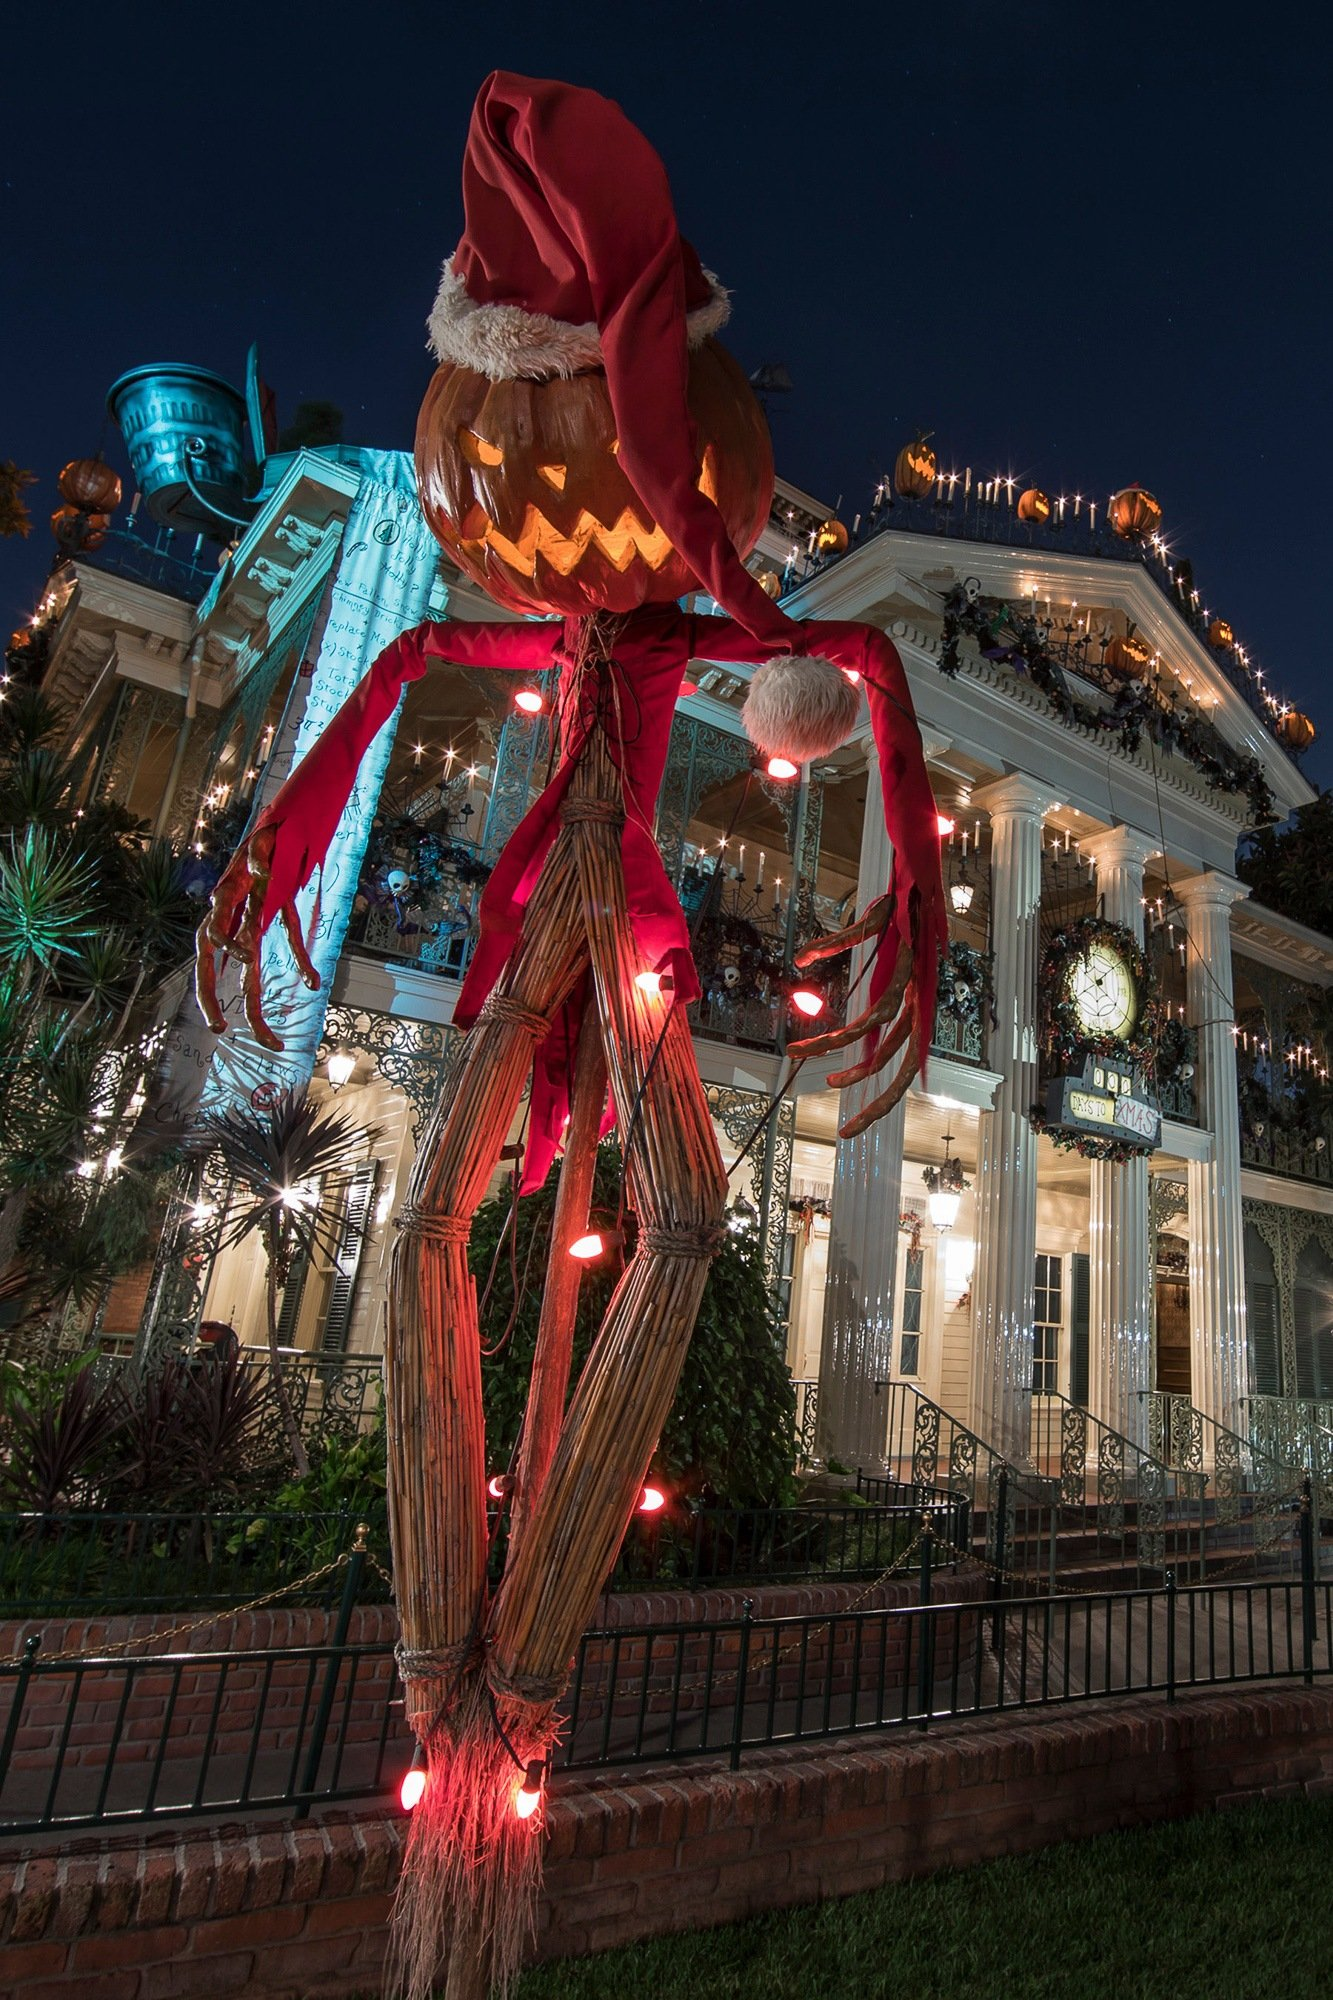 Haunted Holiday during Halloween at Disneyland